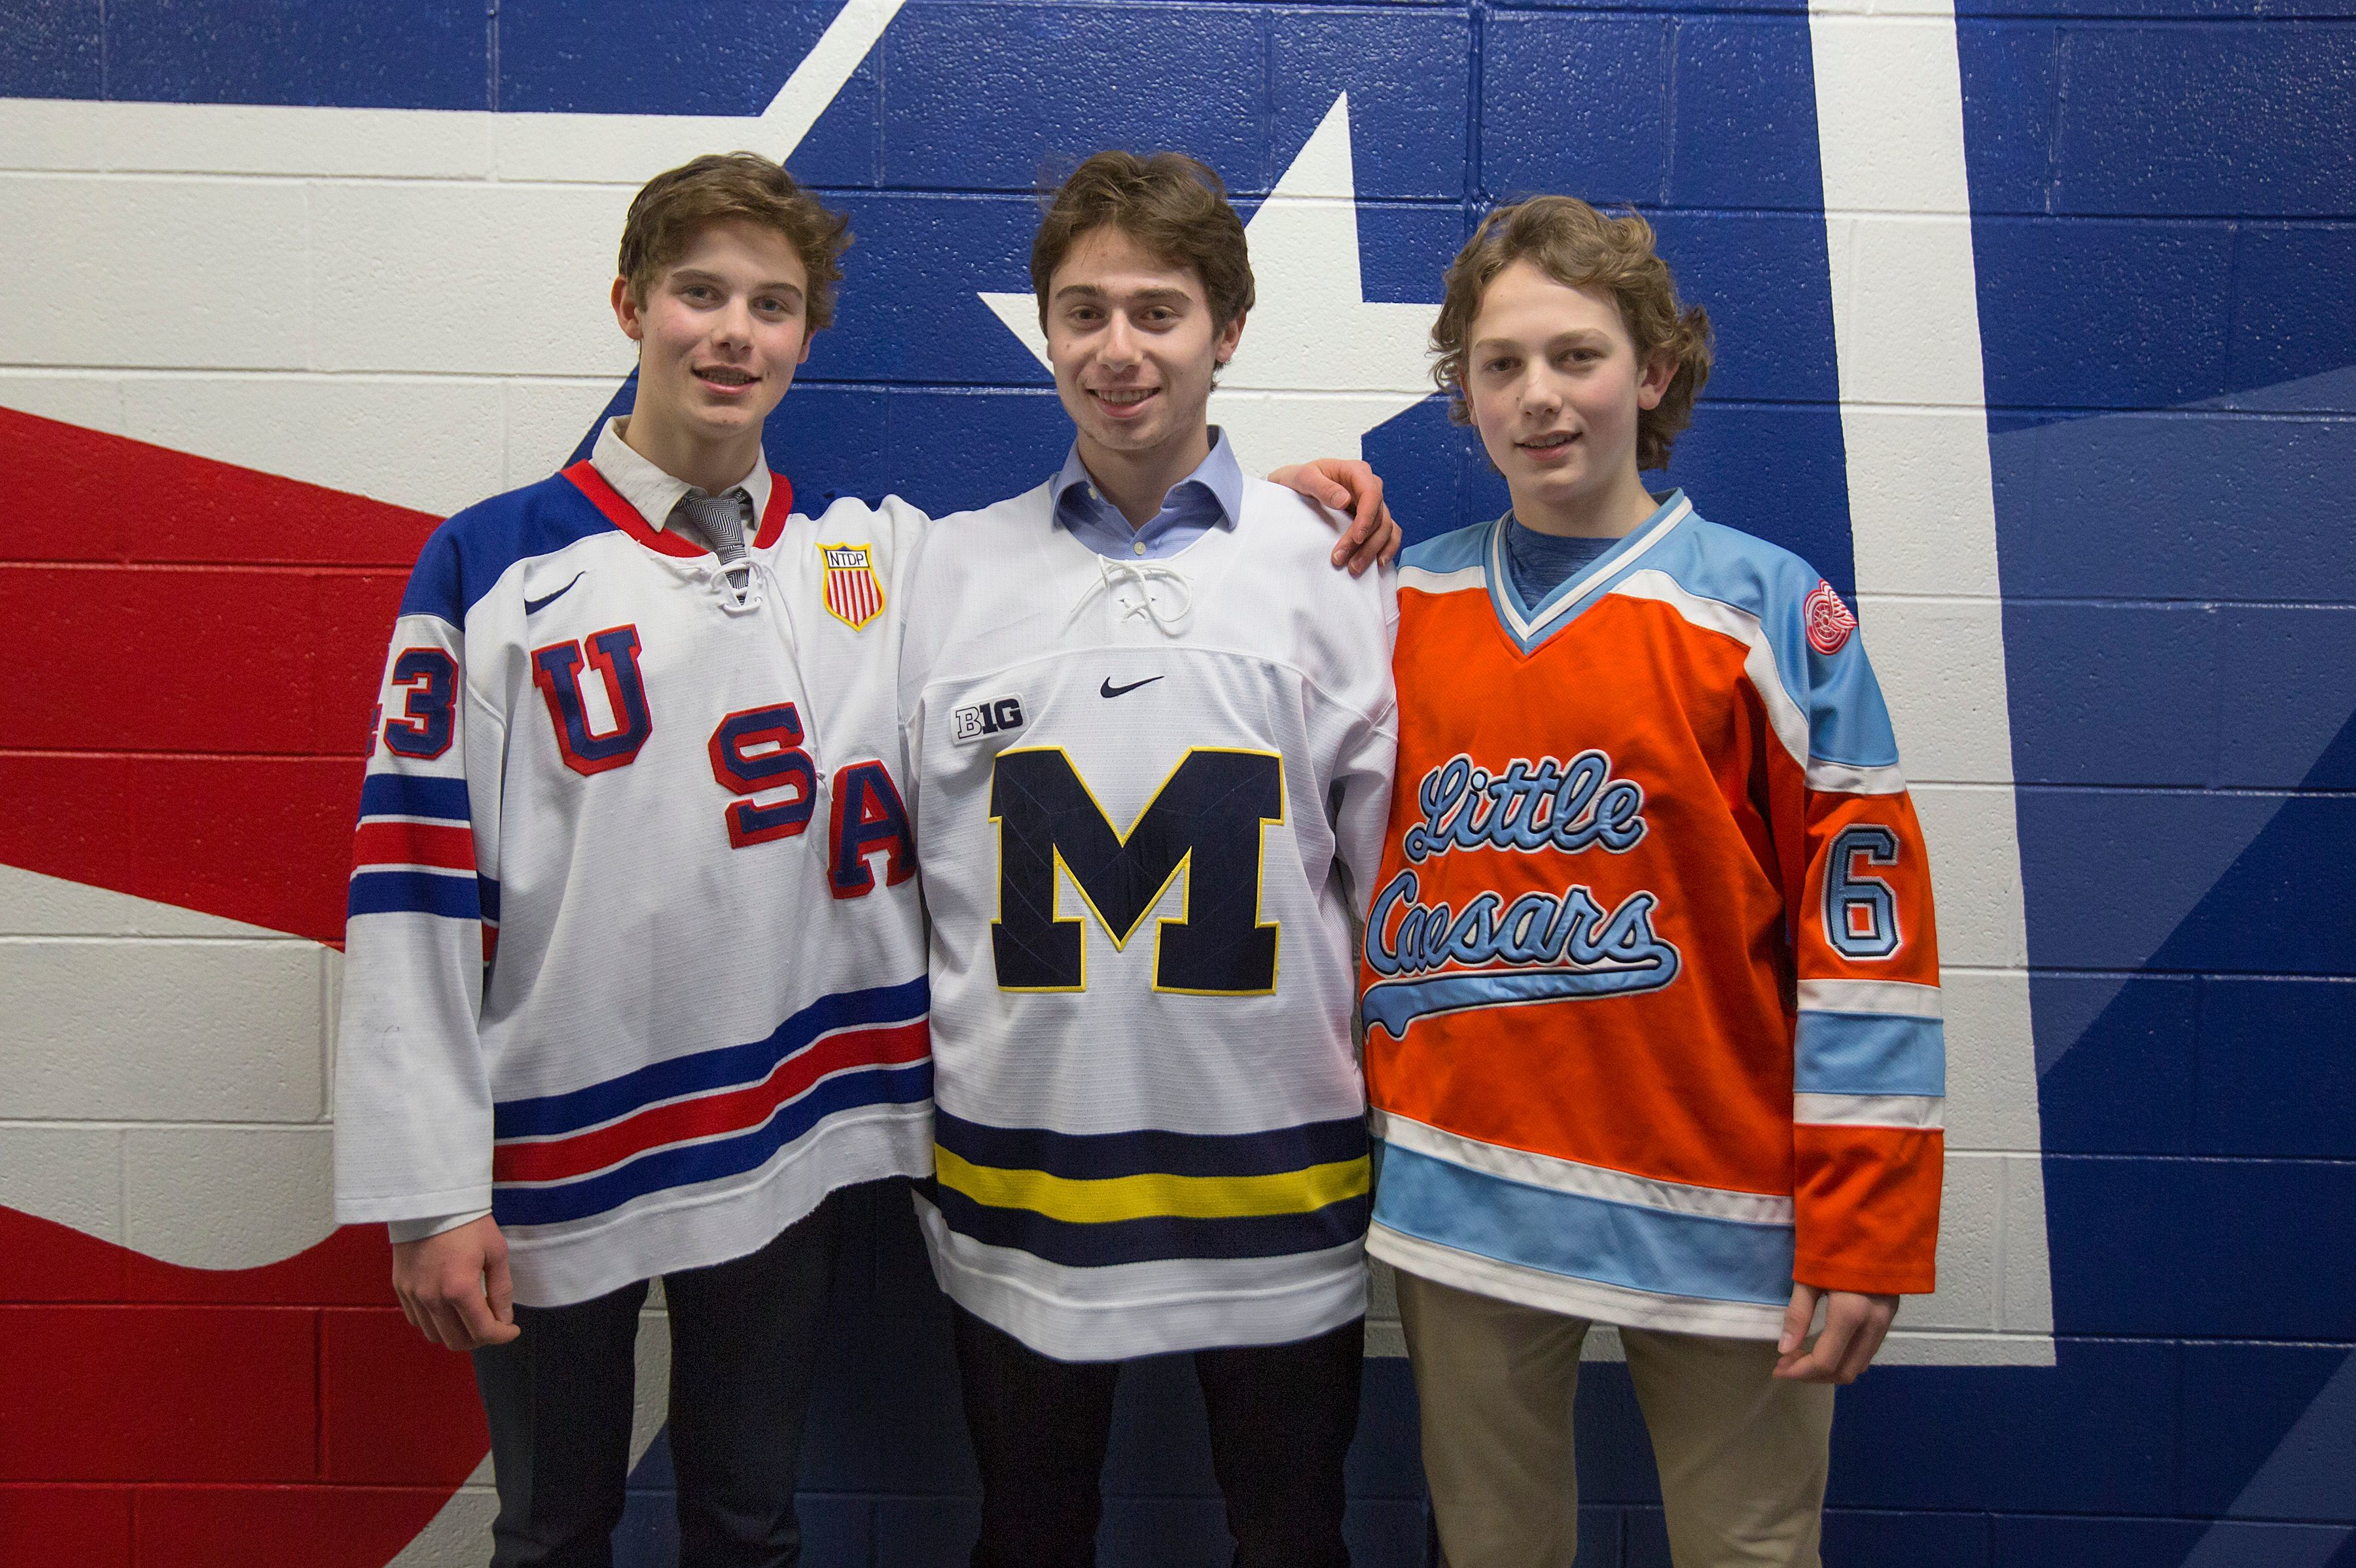 The Hughes brothers are shown in a 2019 photo at USA Hockey Arena in Plymouth, Mich. Forward Jack Hughes (left) now plays for the Devils and will be joined defenseman Luke (right), after New Jersey selected the latter No. 4 overall in the 2021 NHL Draft. Quinn Hughes (center) is currently a defenseman for the Vancouver Canucks.